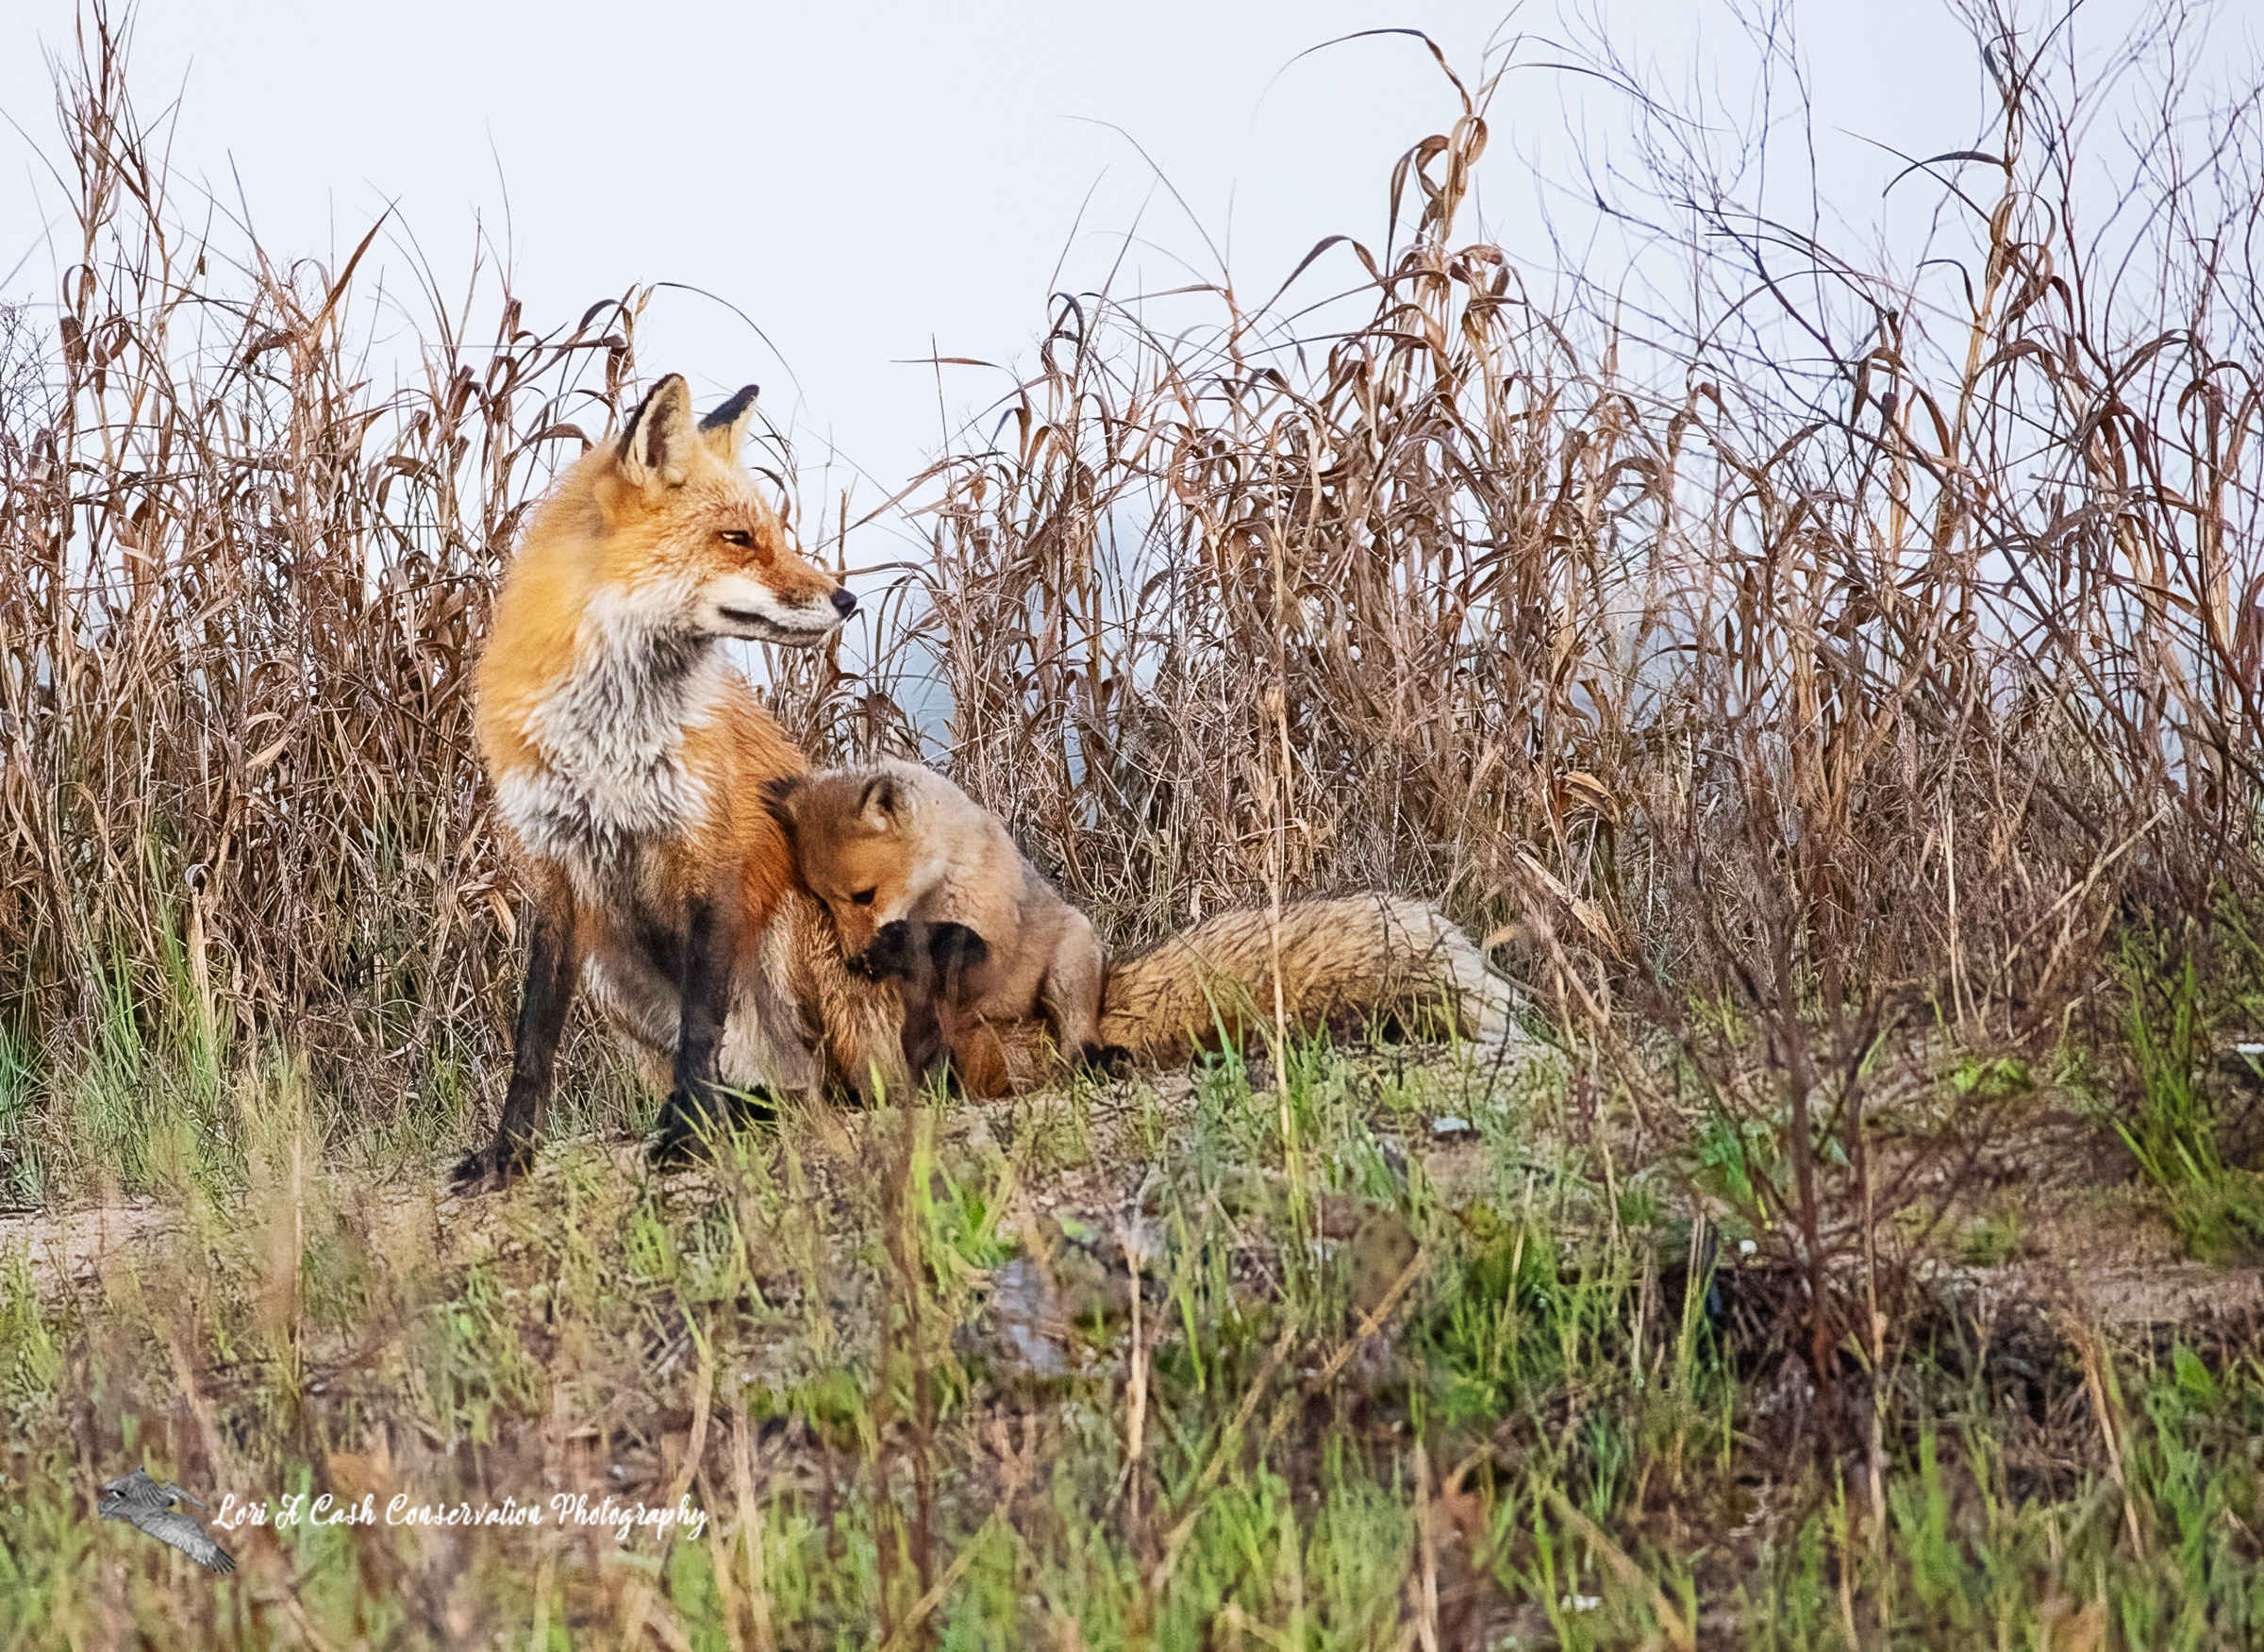 Red fox (Vulpes vulpes) vixen and pup near their den on an early morning spring day at Fort Monroe National Monument in Hampton, Virginia.